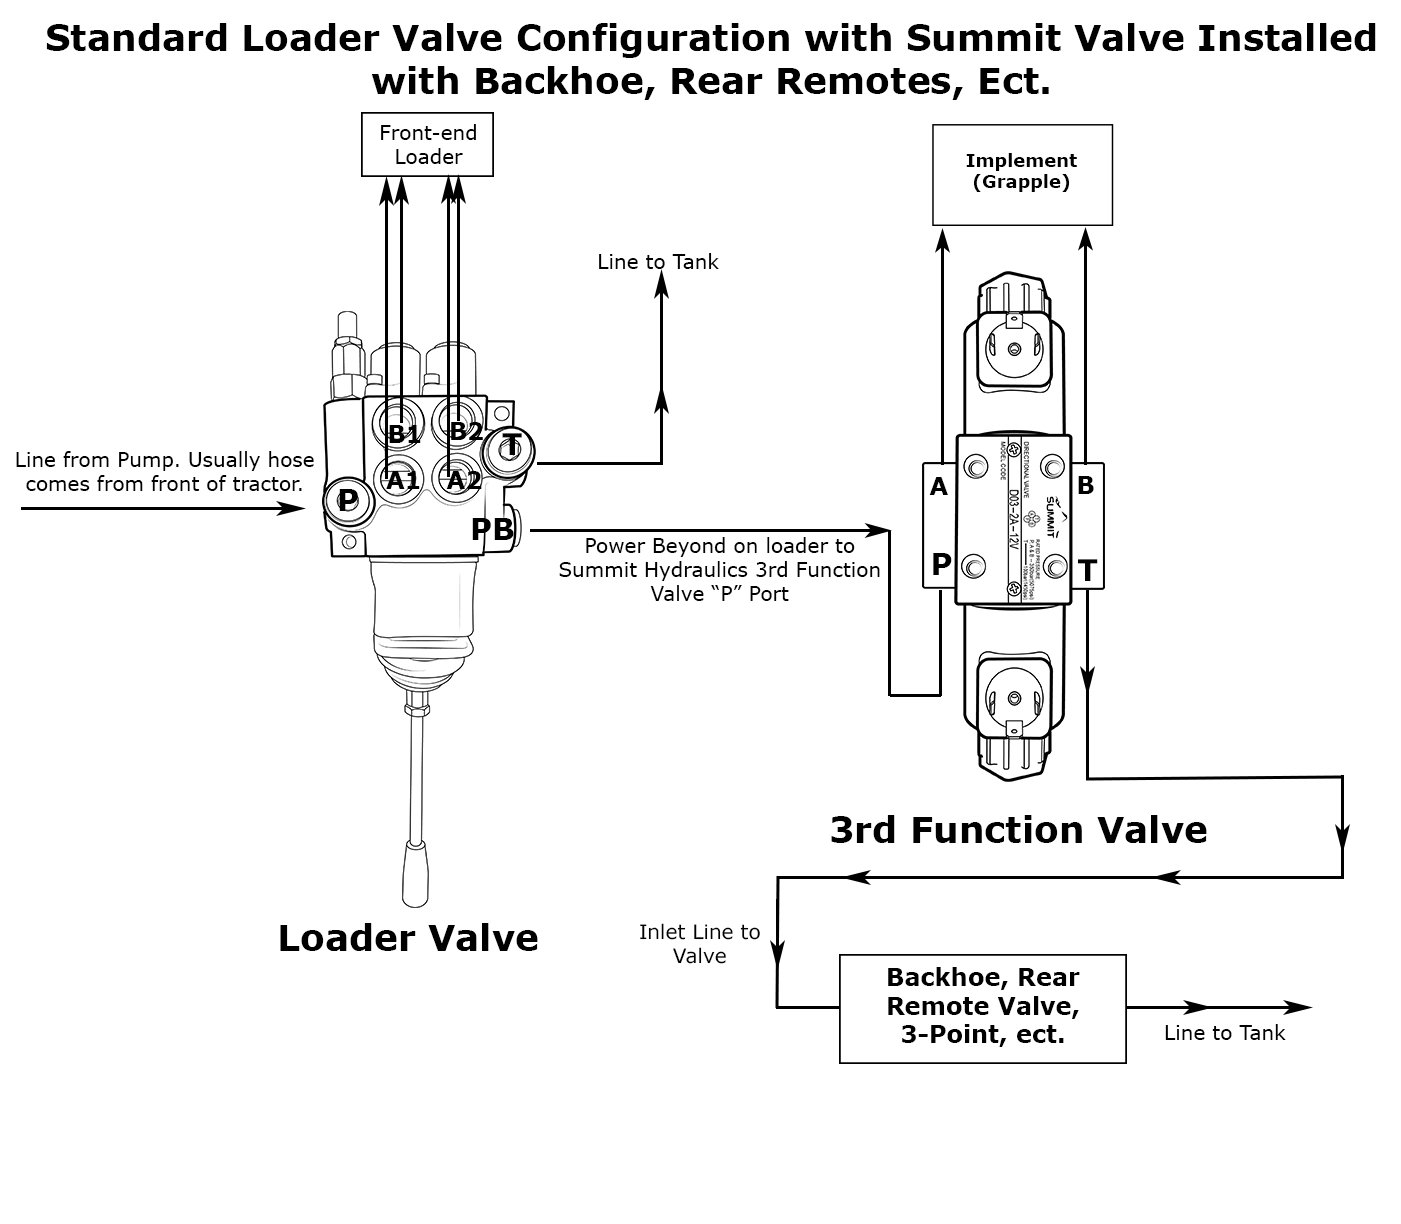 what is a third function valve kit, and what are the benefits of one?  summit hydraulics